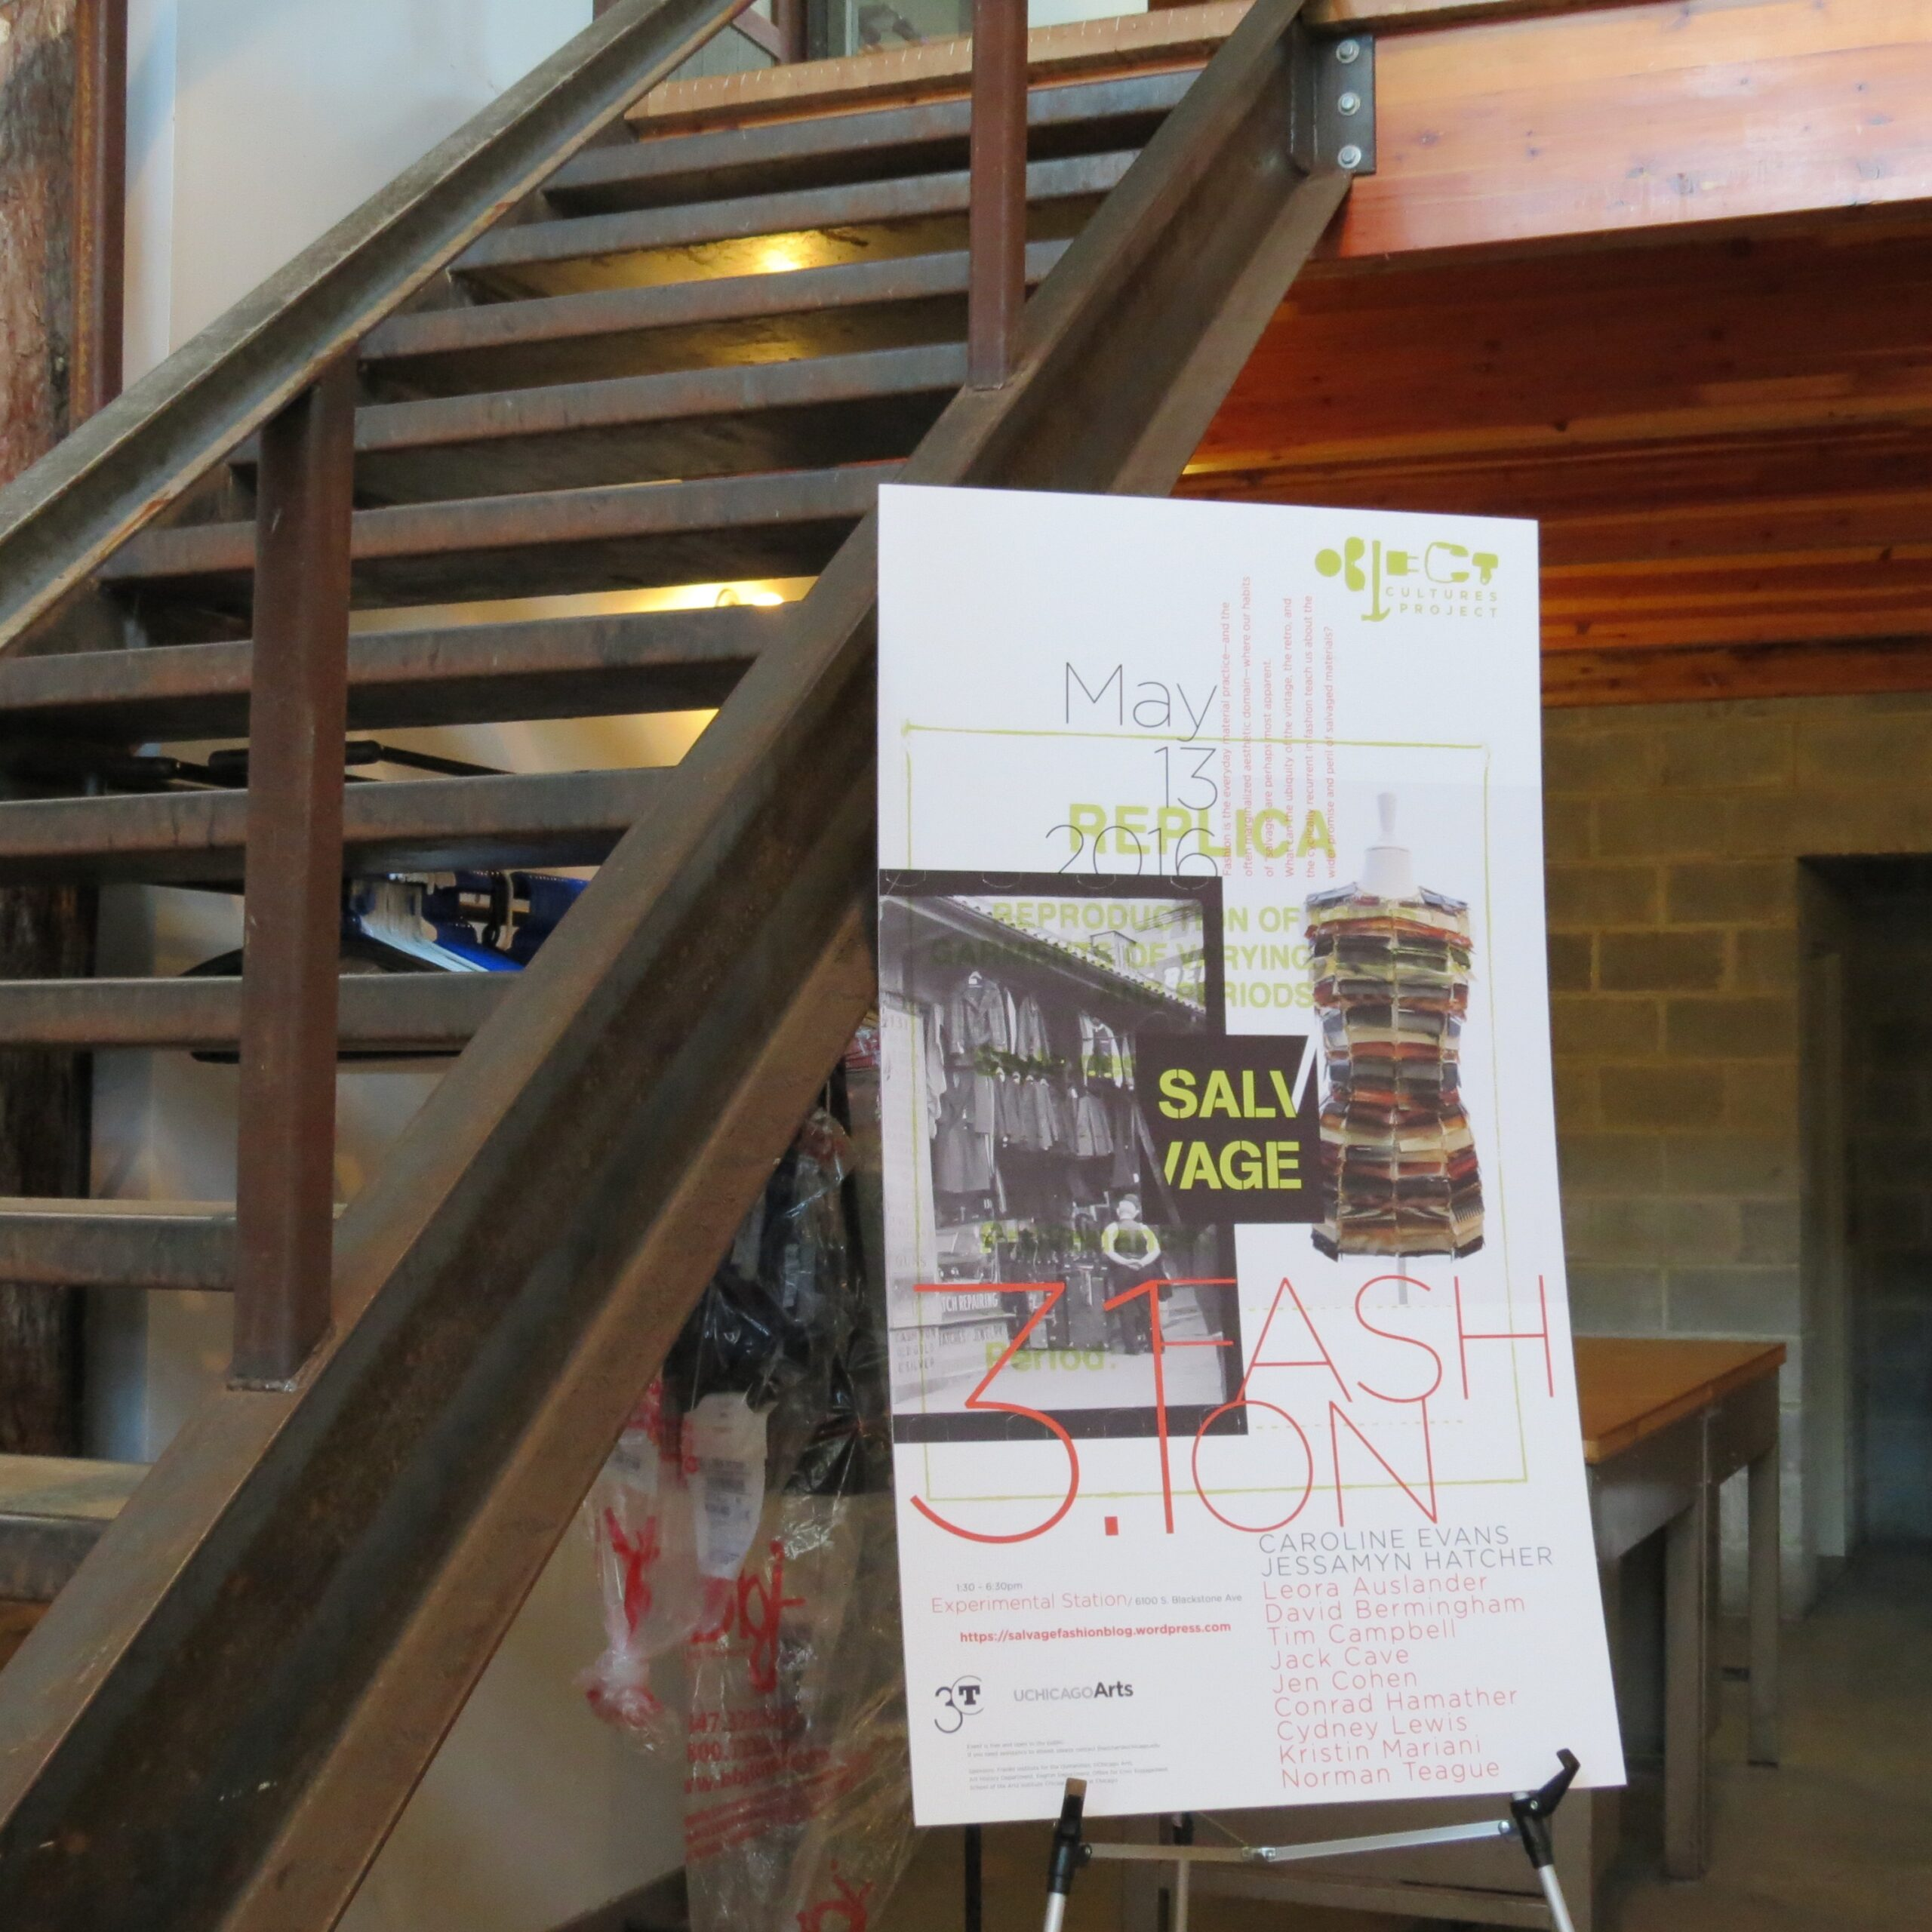 Photo of Salvage 3.1 poster in front of modern wooden staircase